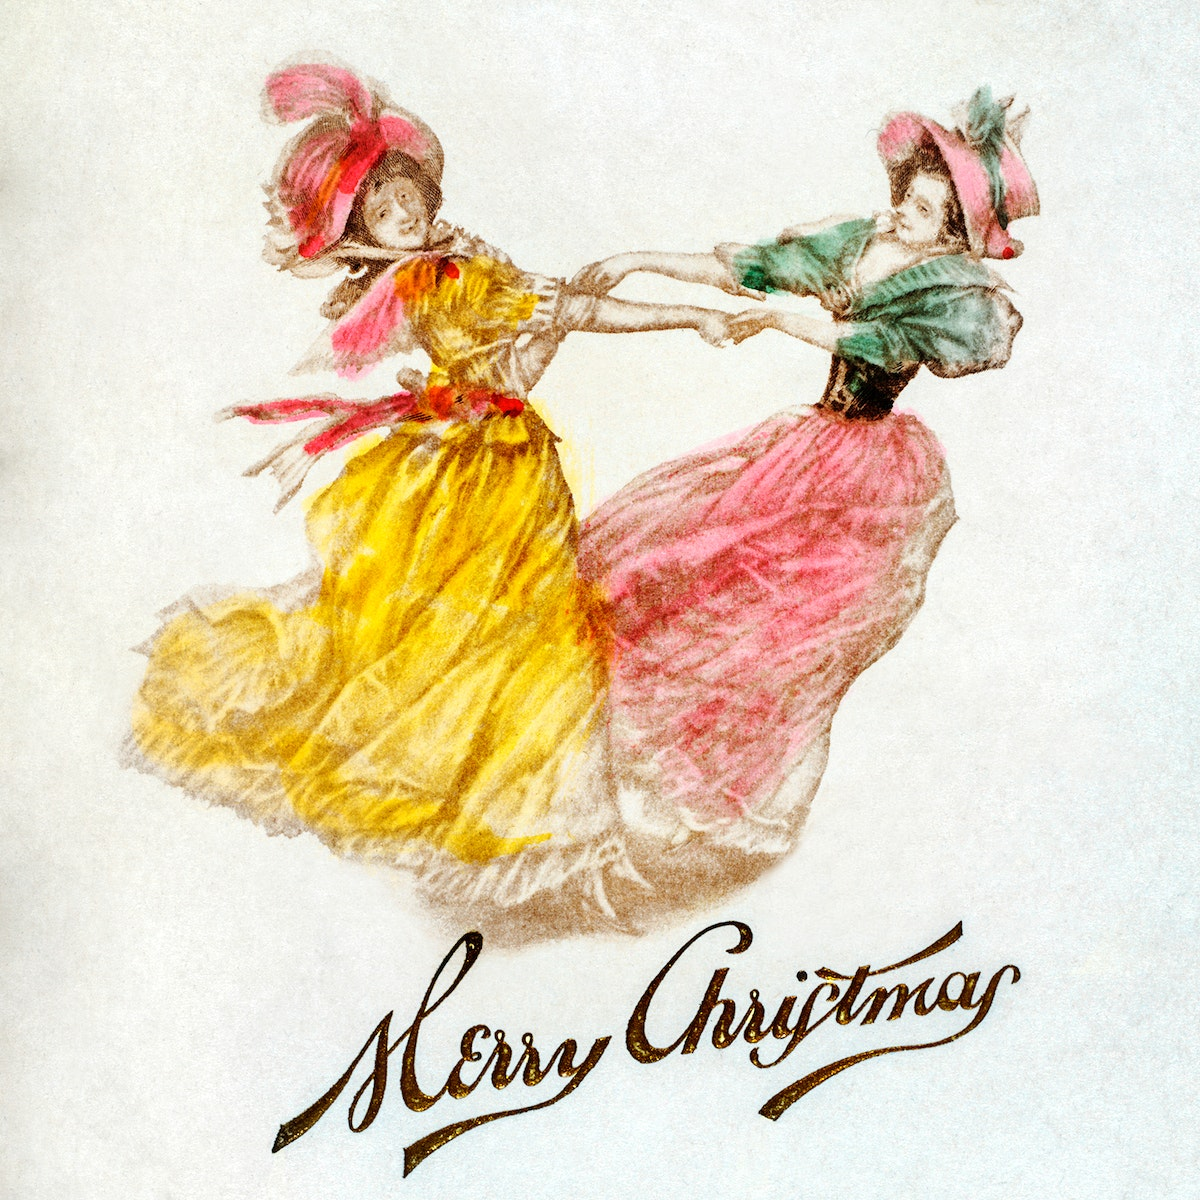 Christmas Dinner Card with Women Dancing (1900) by Battery Park Hotel, Asheville, NYC. Original from The New York Public…